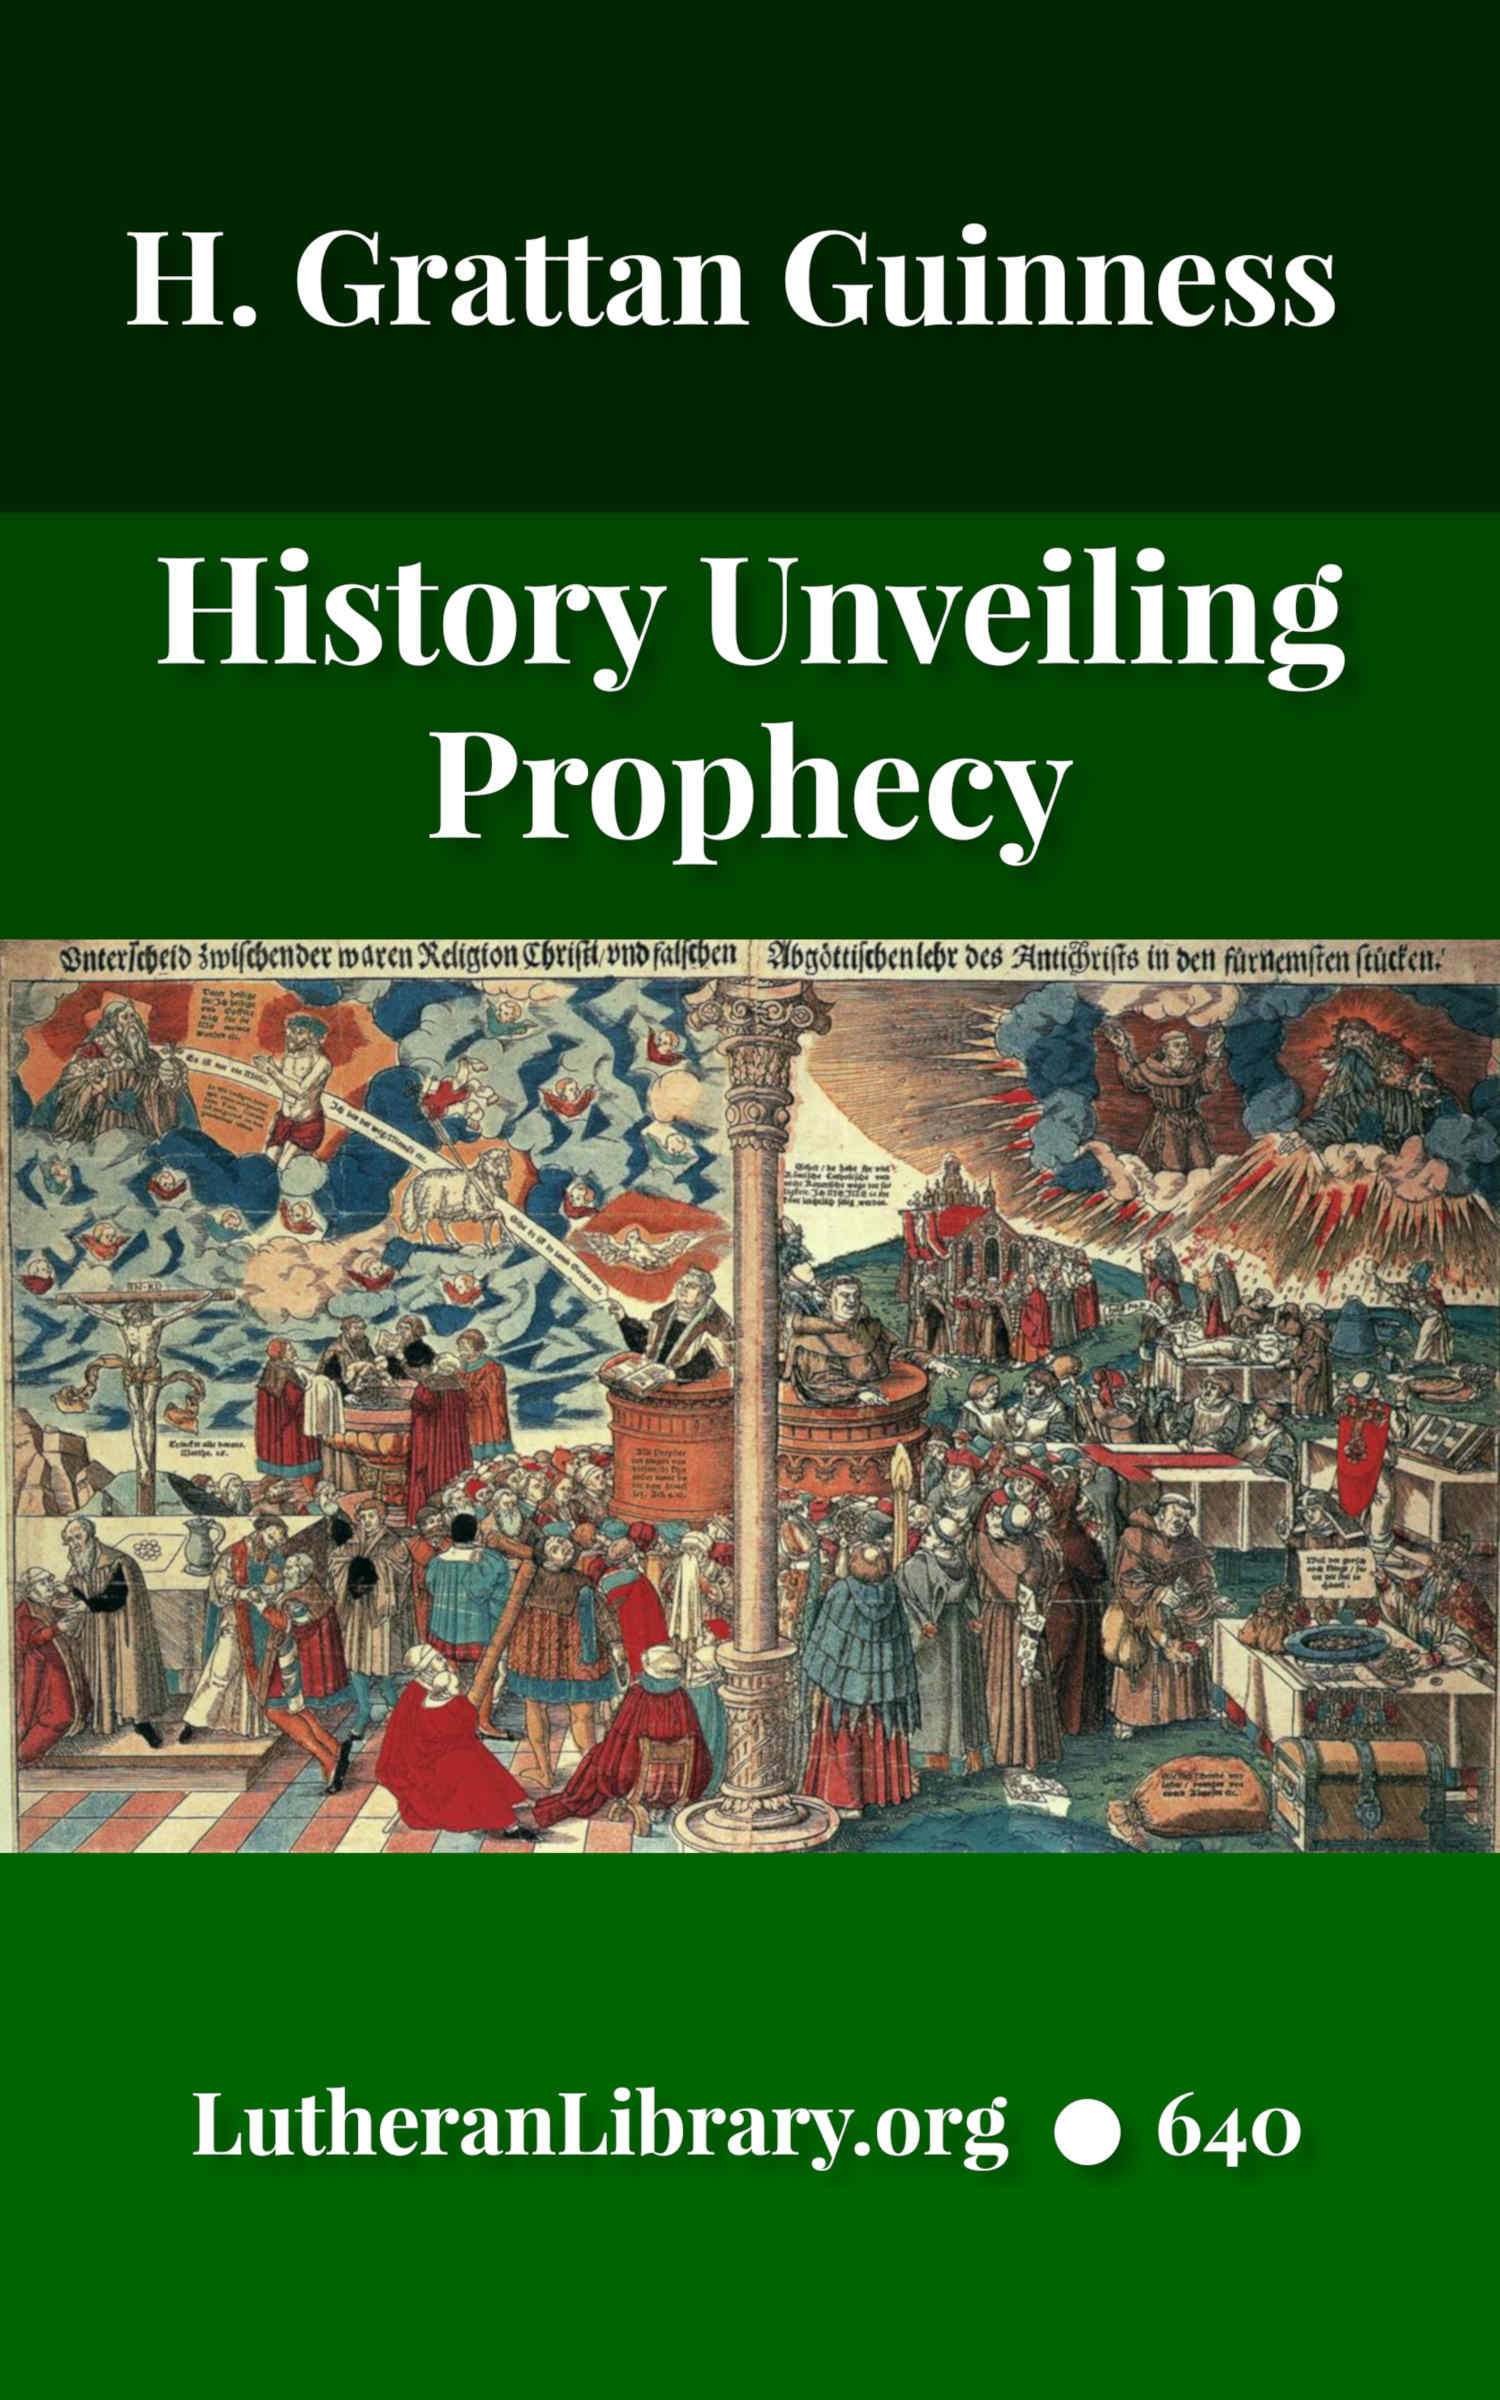 History Unveiling Prophecy by Henry Grattan Guinness